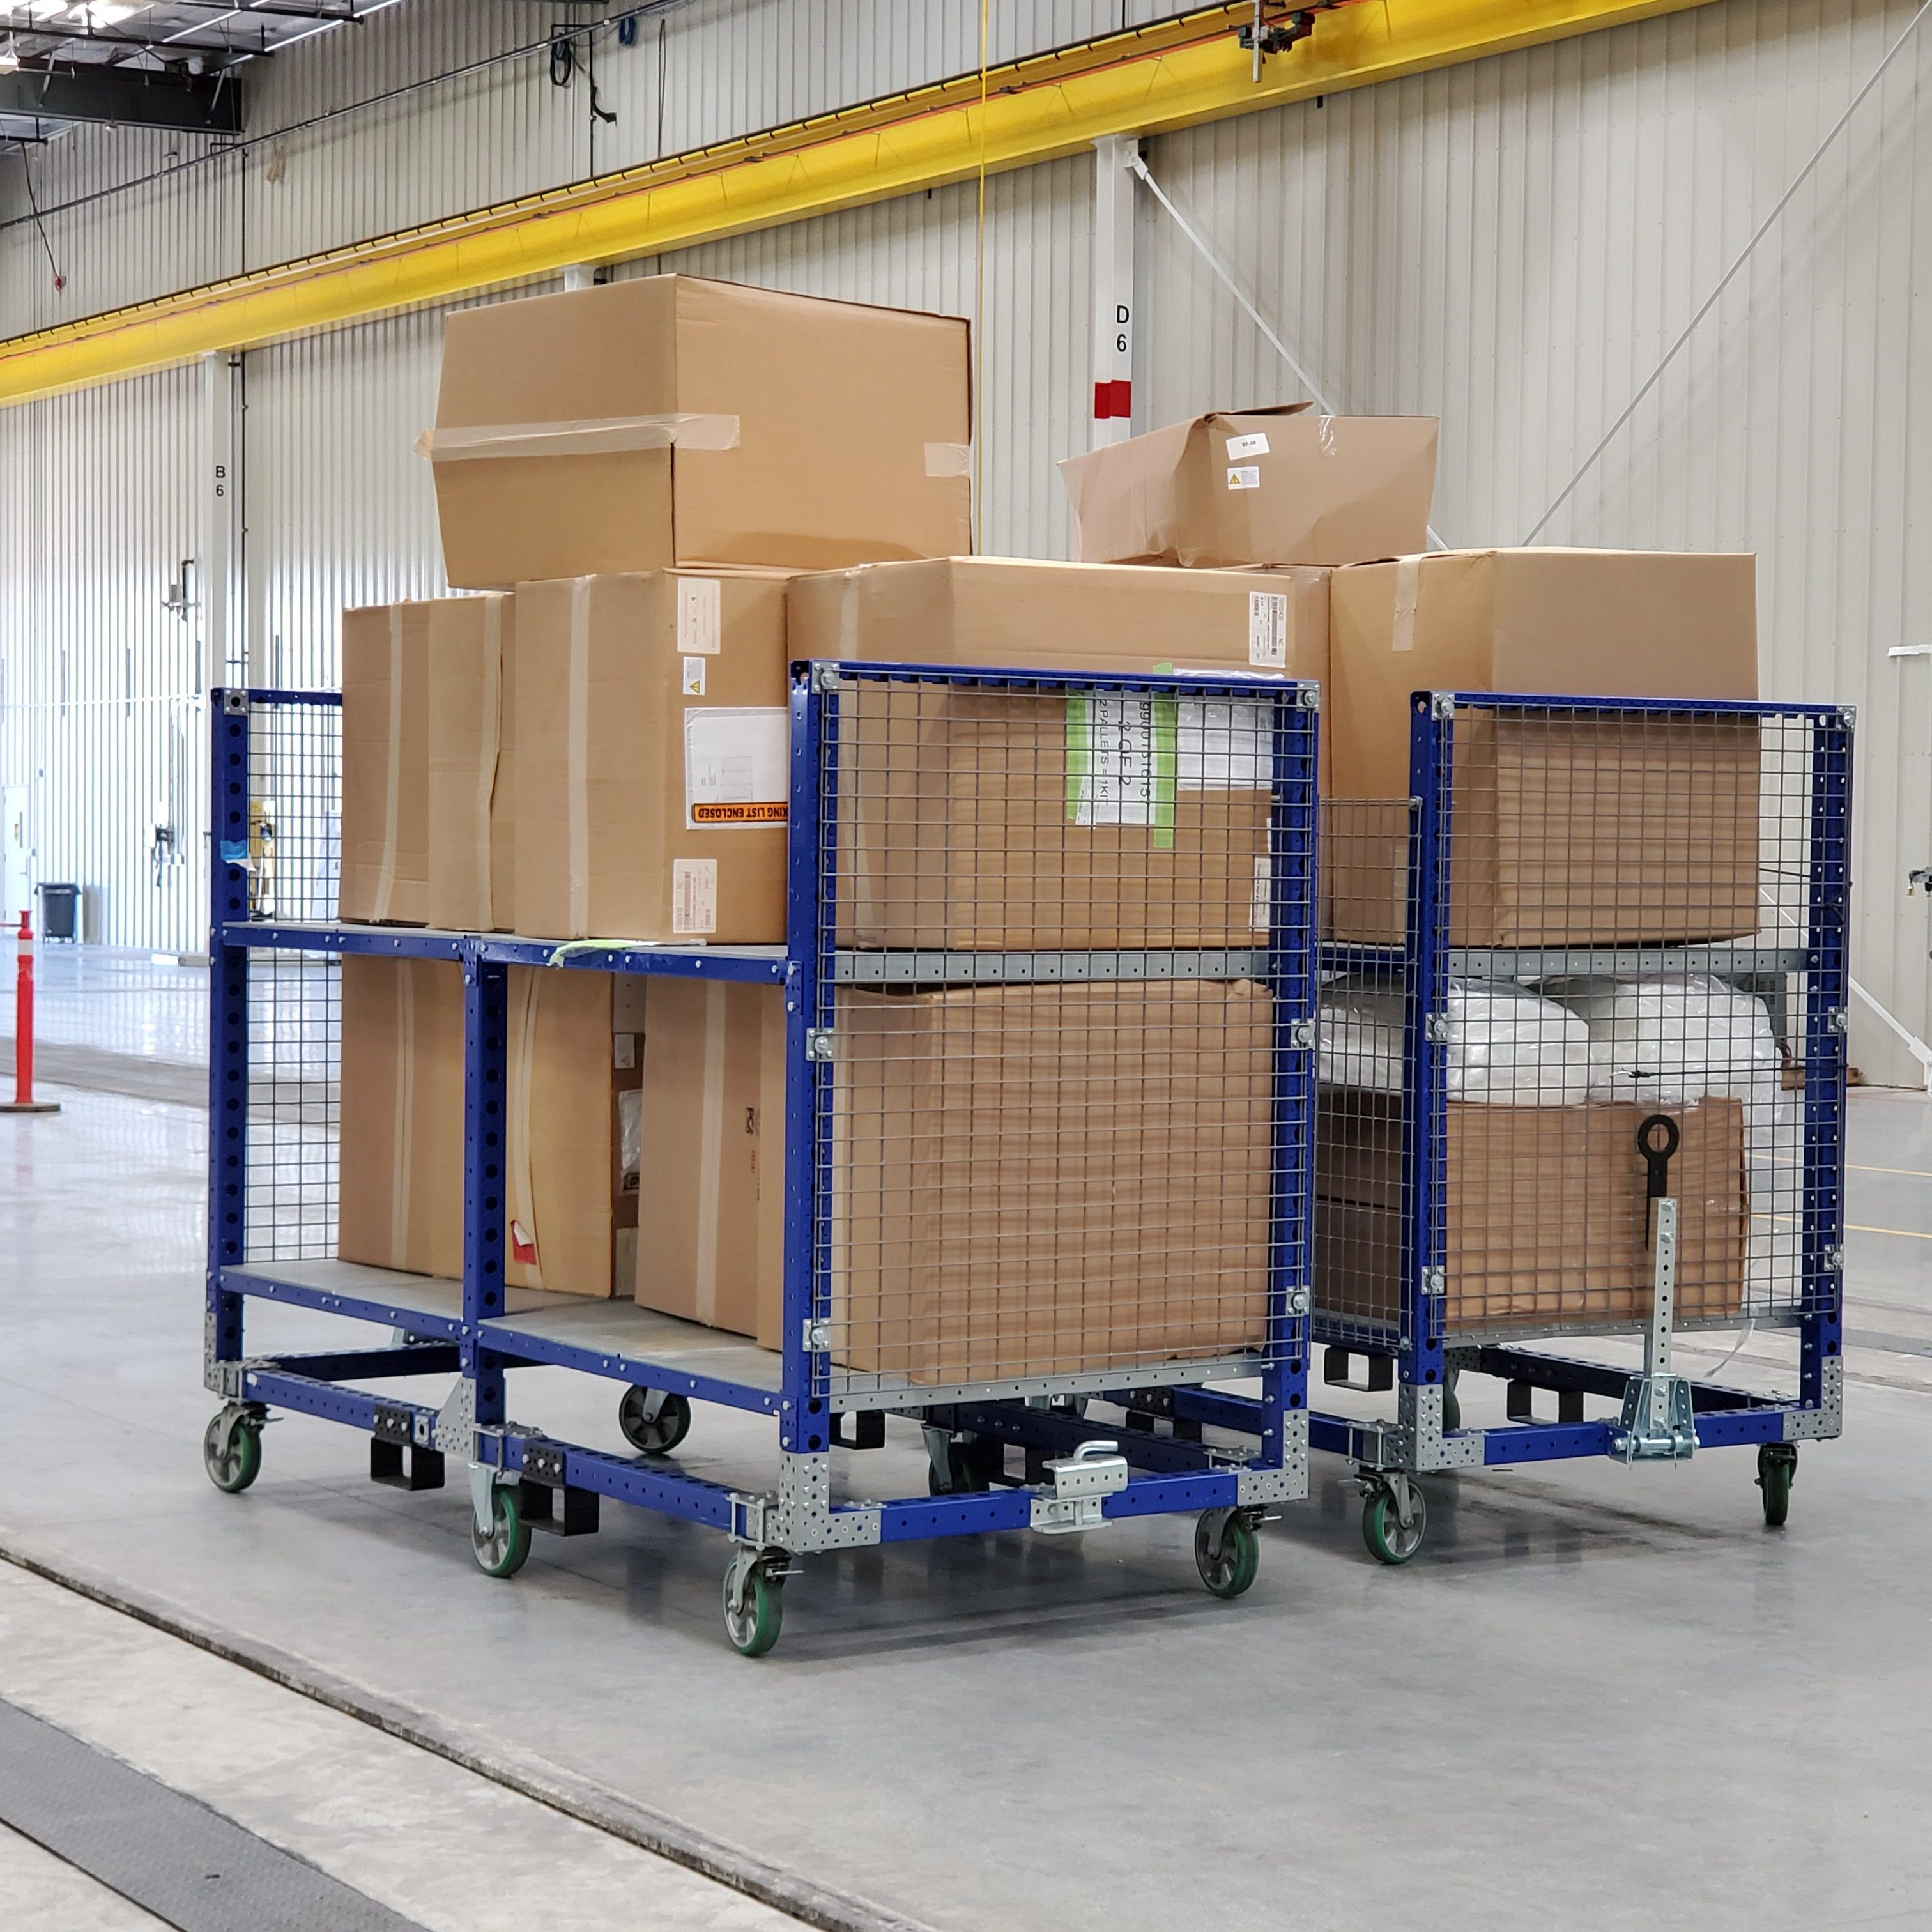 All FlexQube carts being used by Siemens!